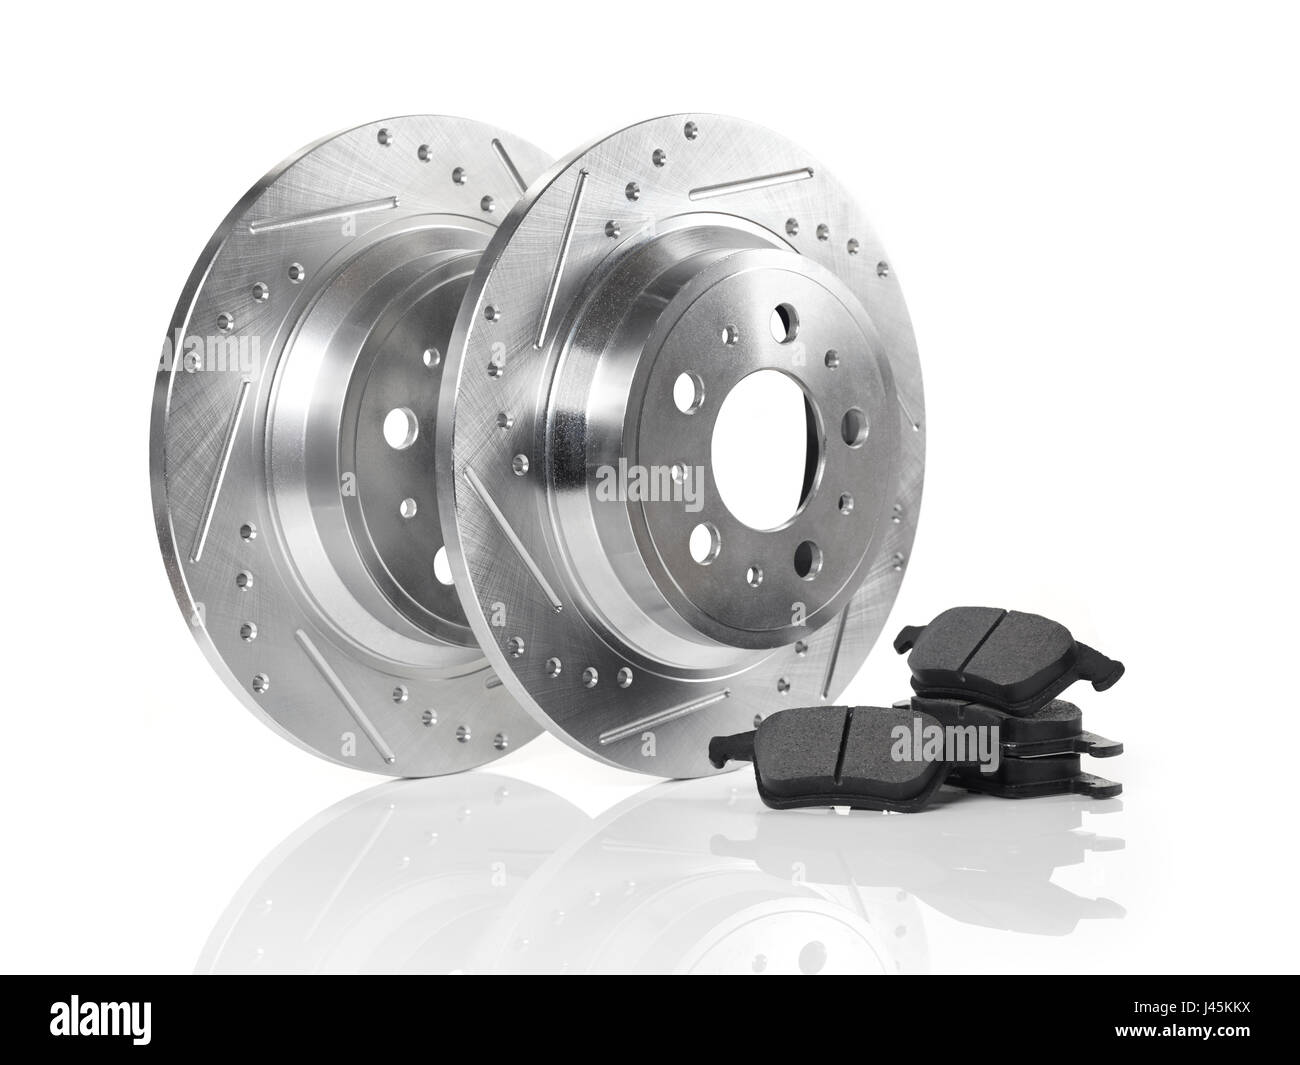 Car brake discs, rotors and break pads isolated on white background. Automotive parts still life. - Stock Image